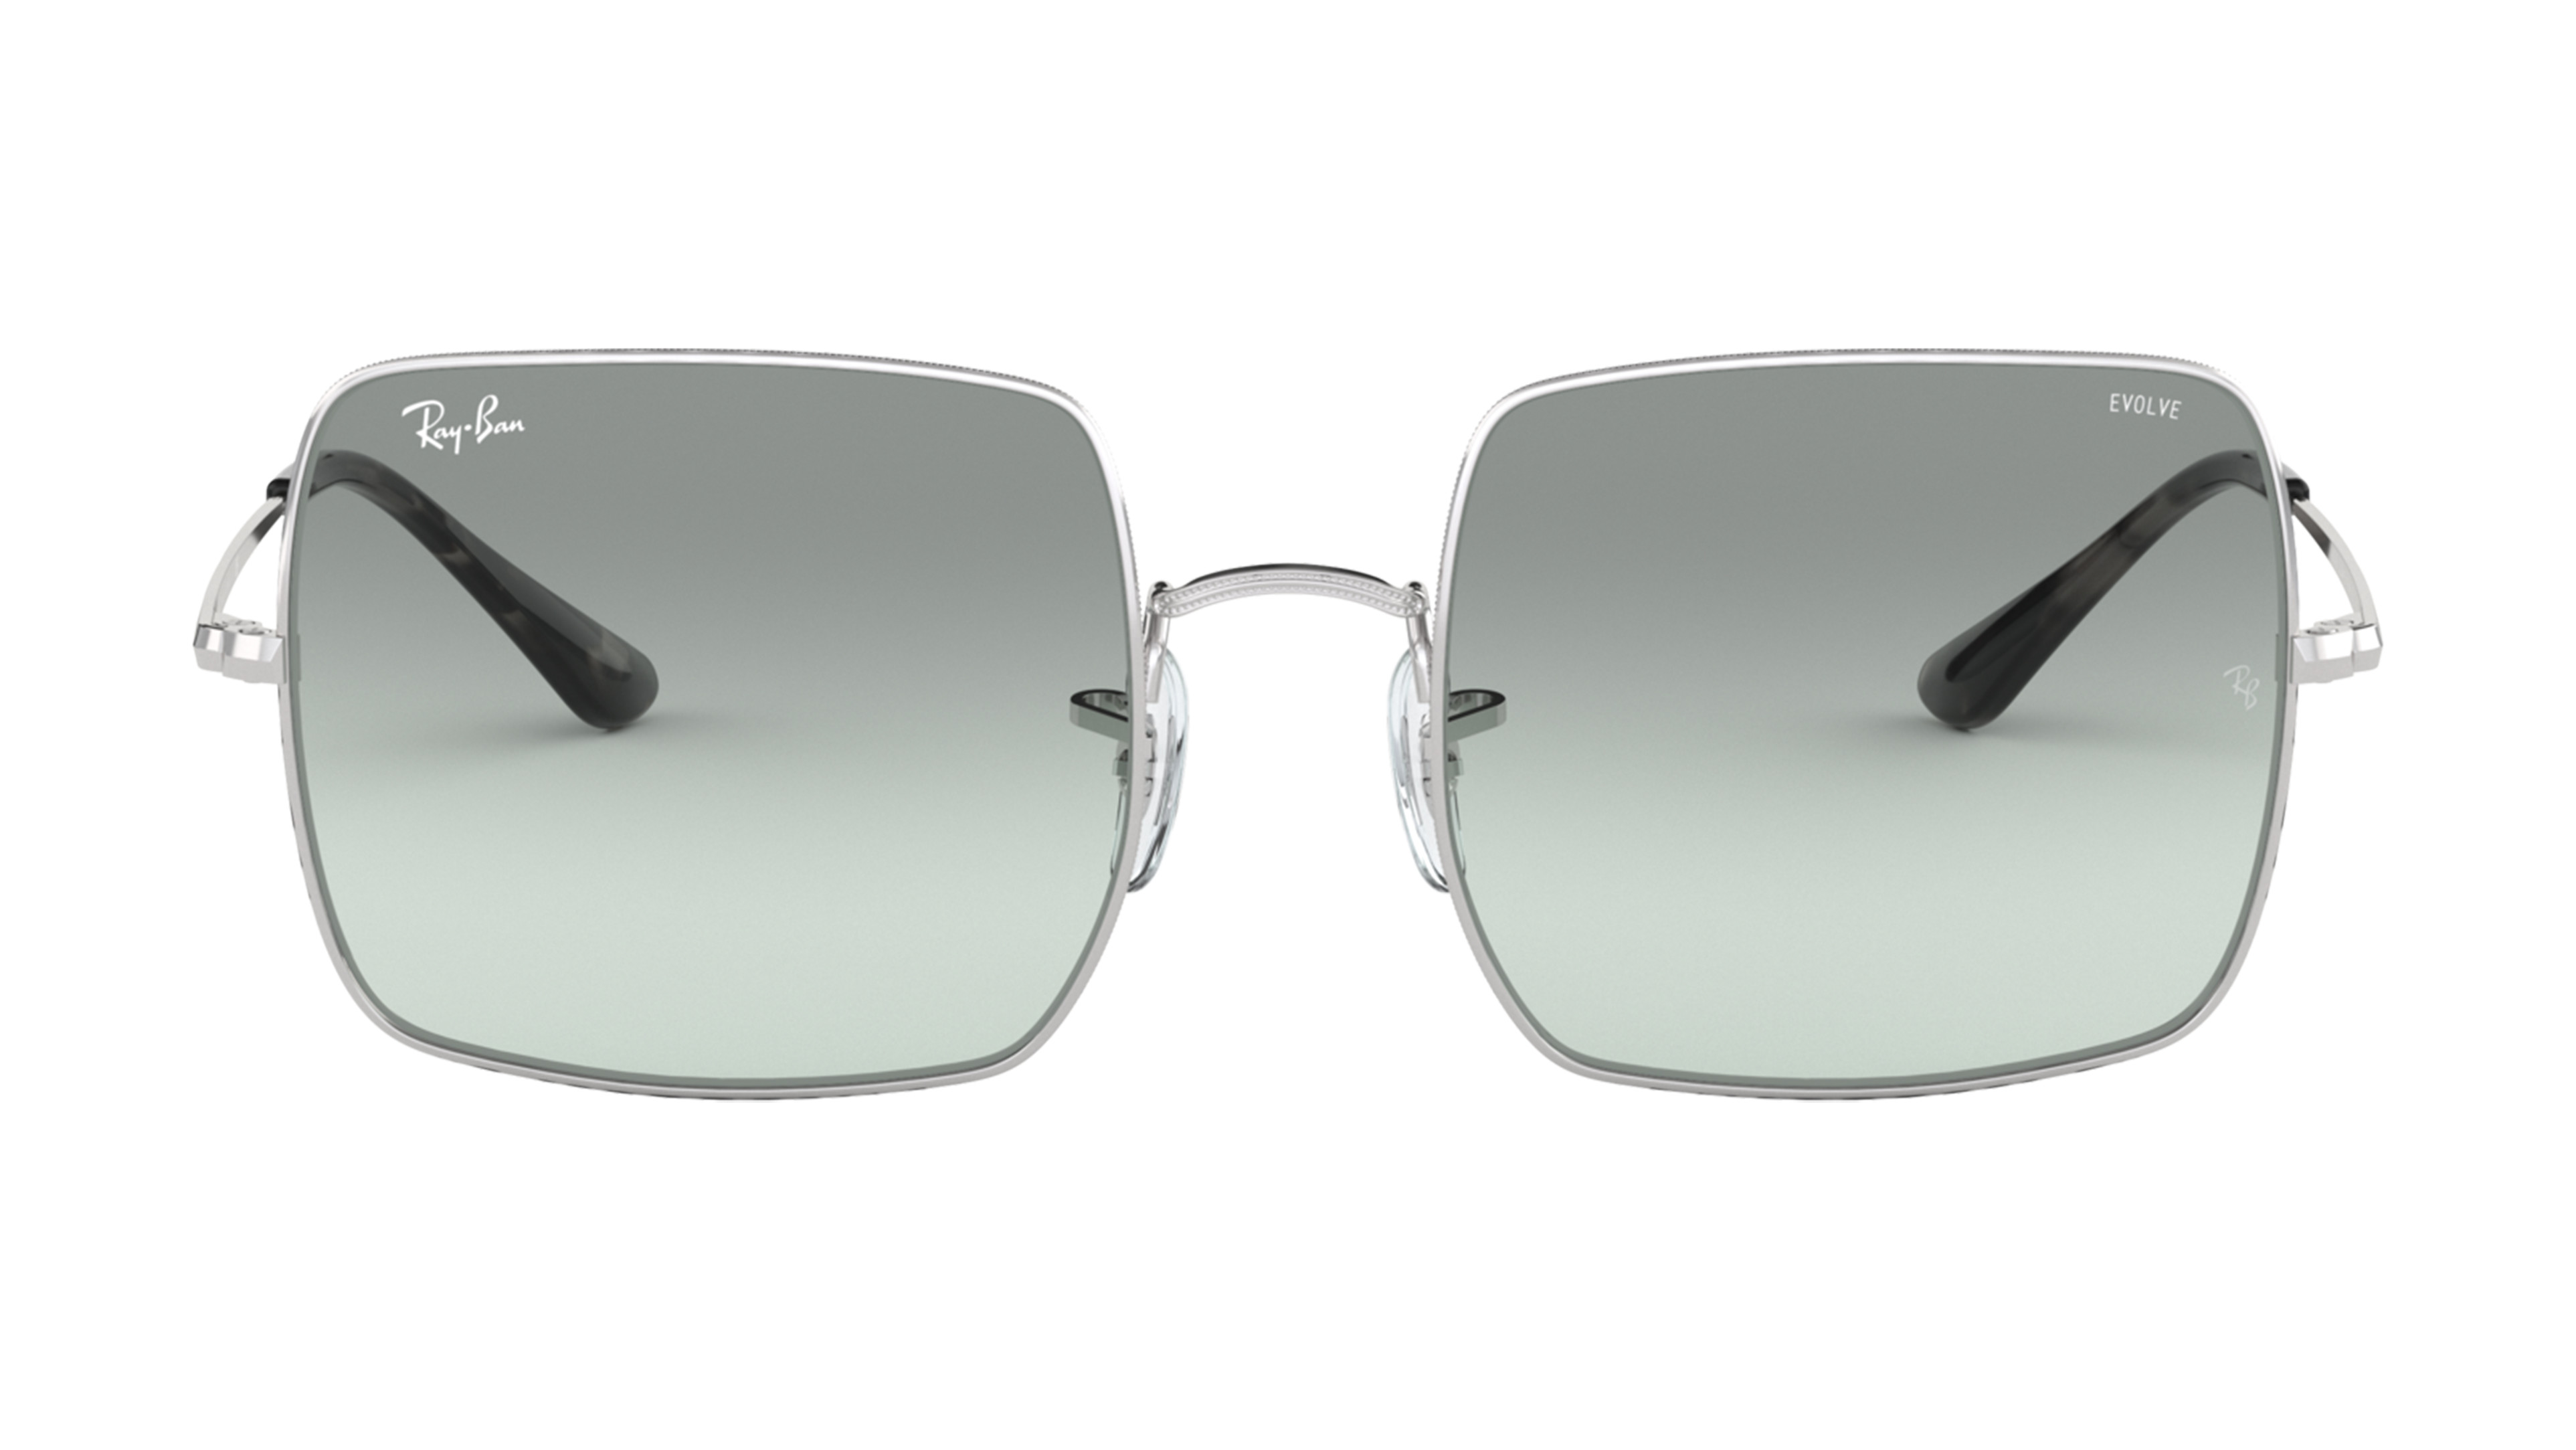 8056597054027-front-ray-ban-sonnenbrille-0RB1971-9149AD